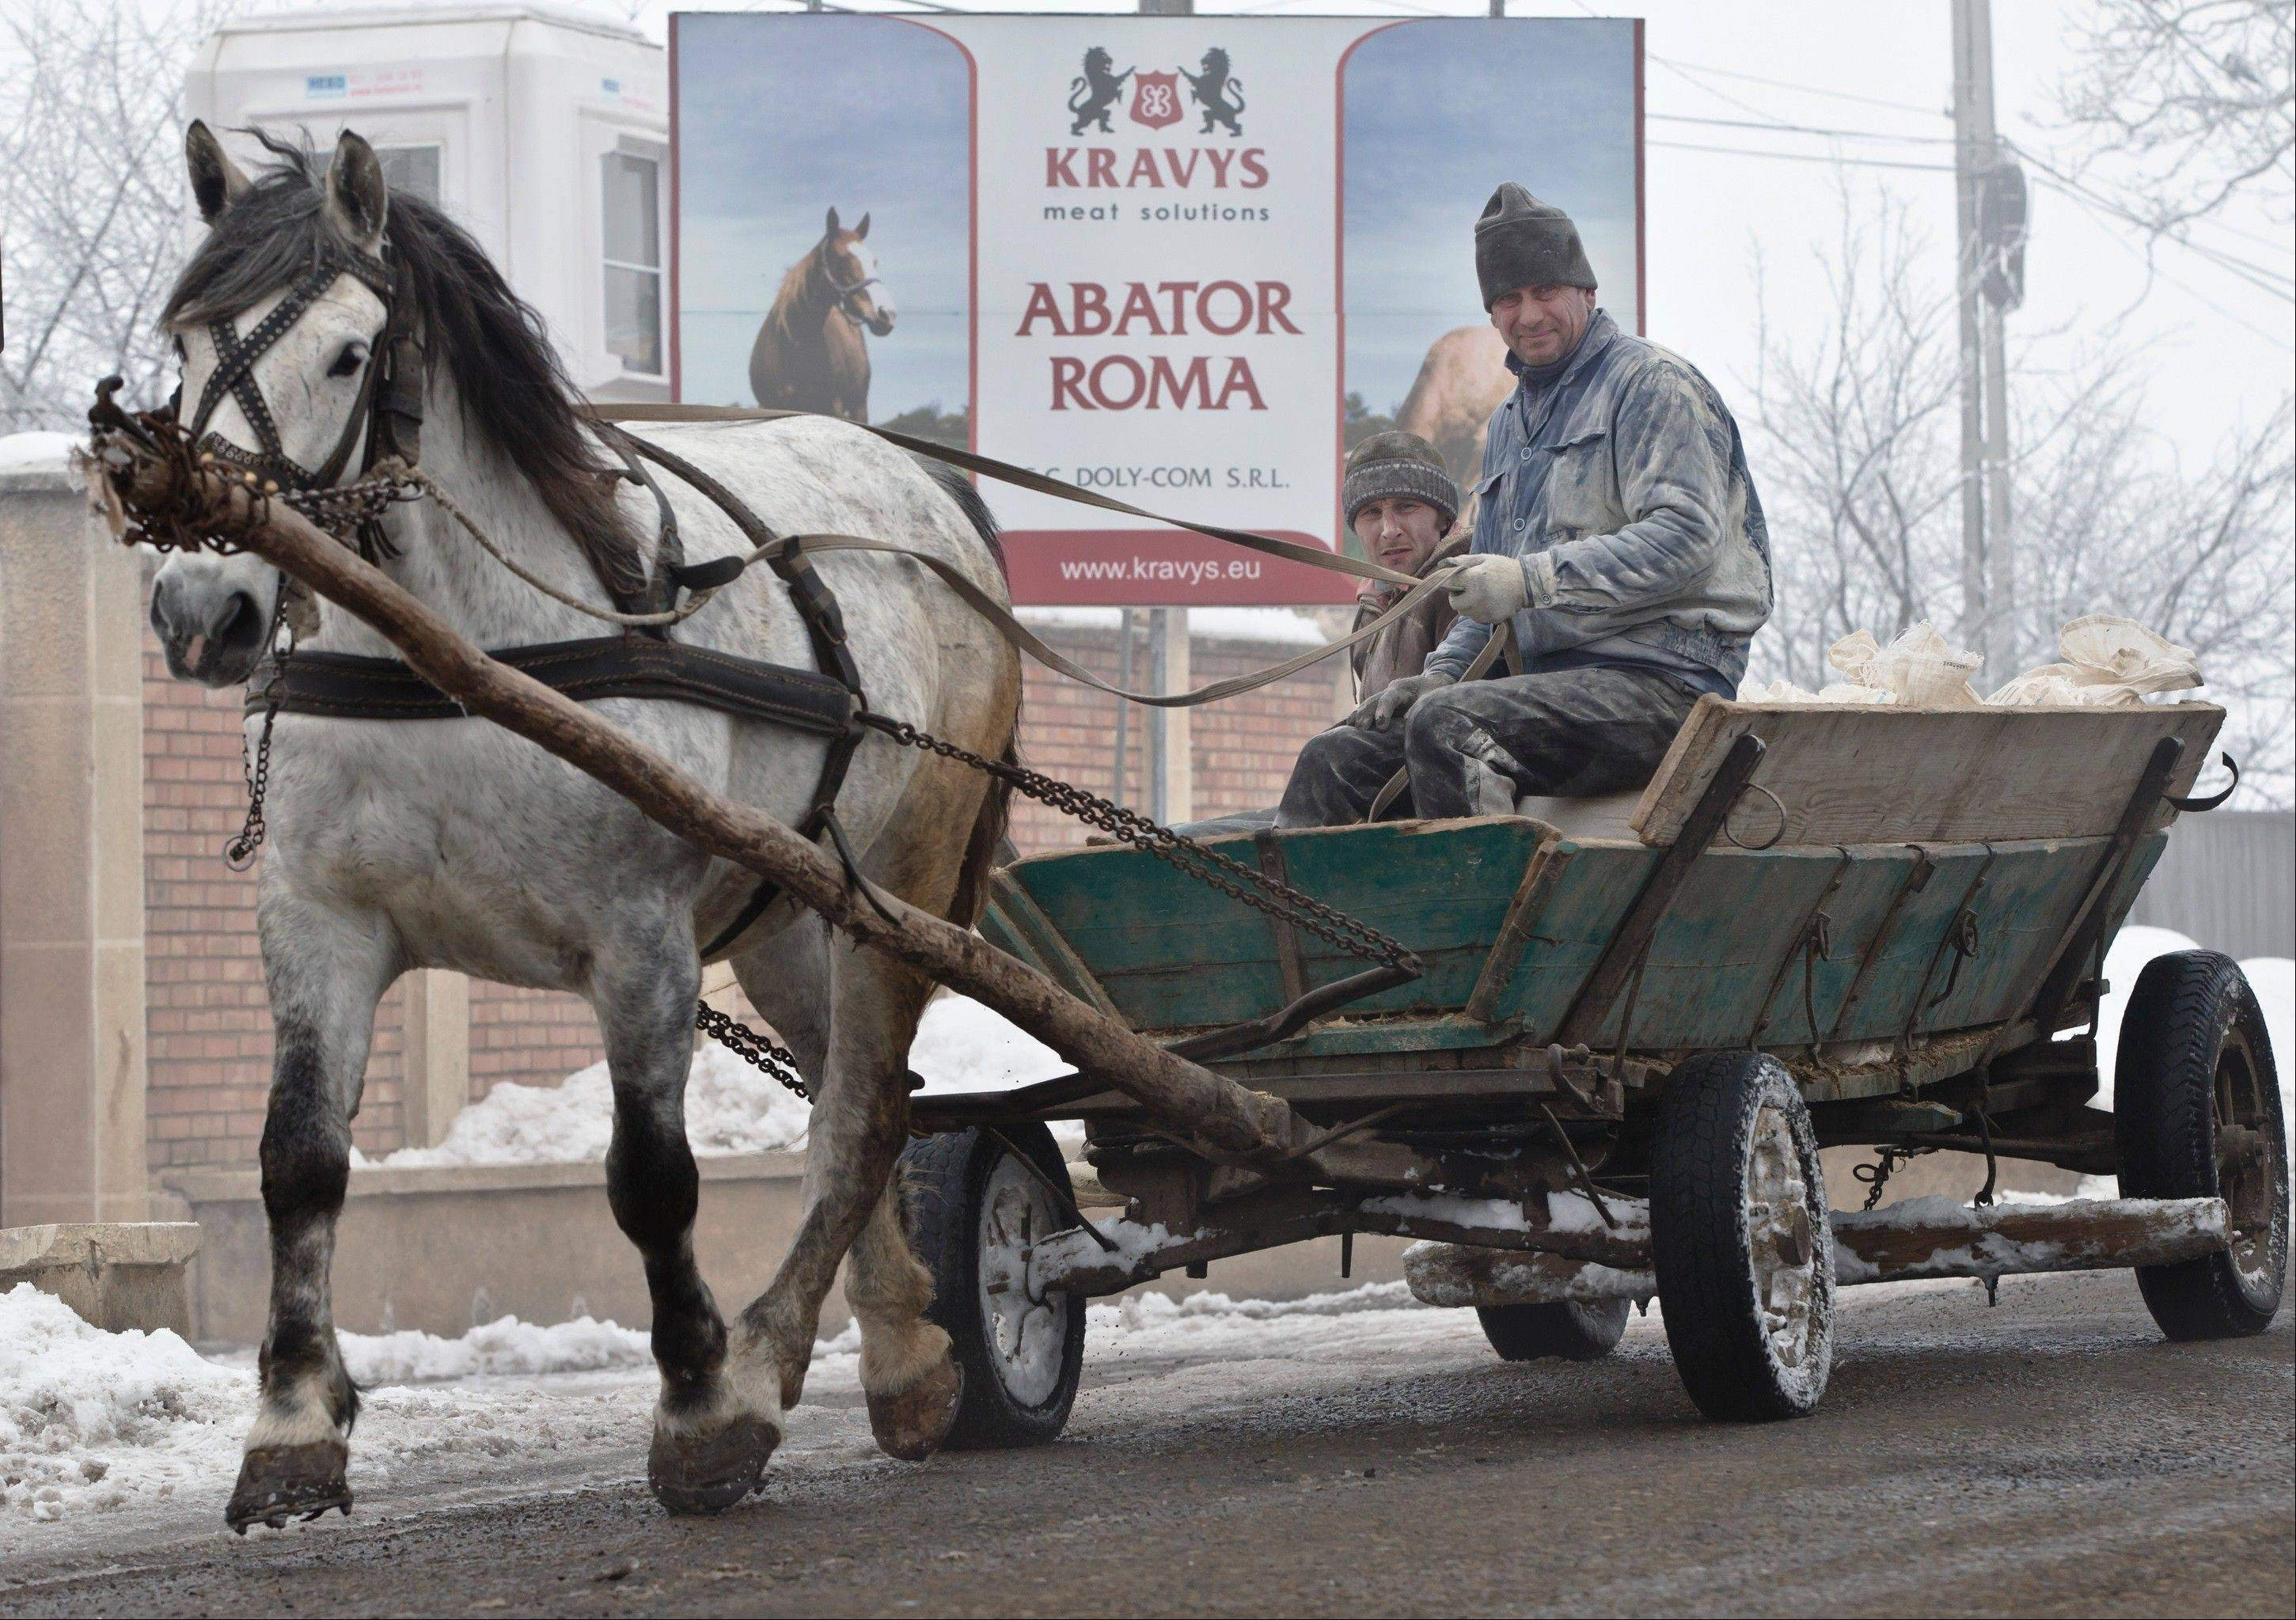 Two men ride in a cart passing by the entrance of the Doly-Com abattoir, one of the two units checked by Romanian authorities in the horse meat scandal, in the village of Roma, northern Romania, Tuesday.